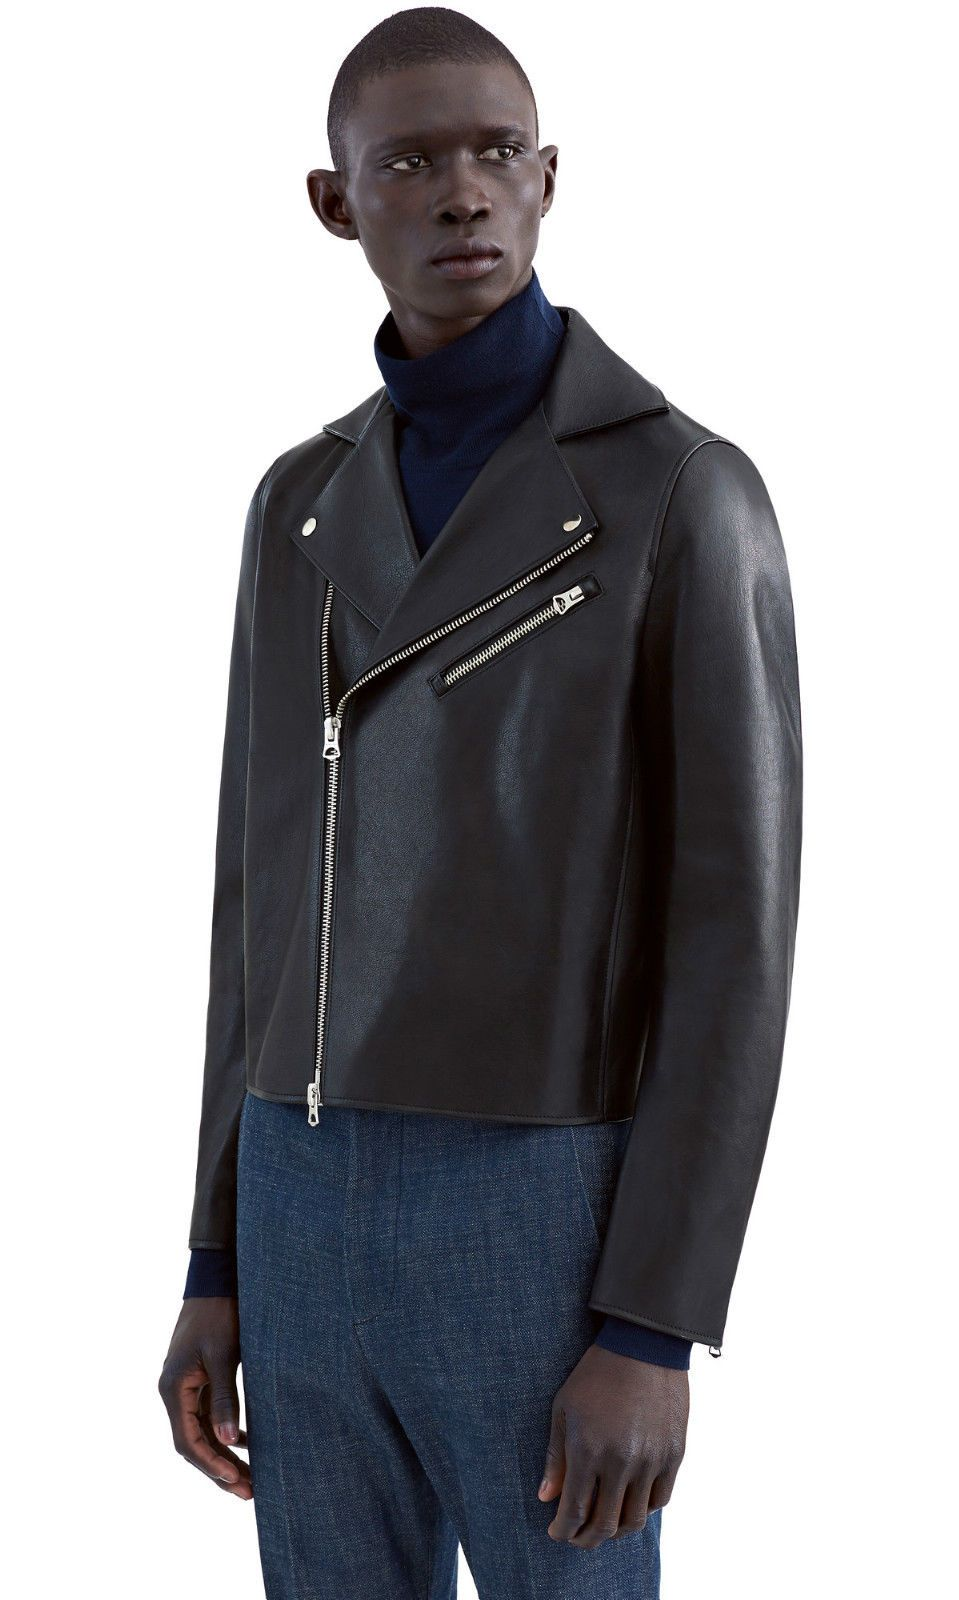 Leather jacket care - Acne Studios Gibson Black Leather Jacket Sz50 New W Tags Care Bag Free P P